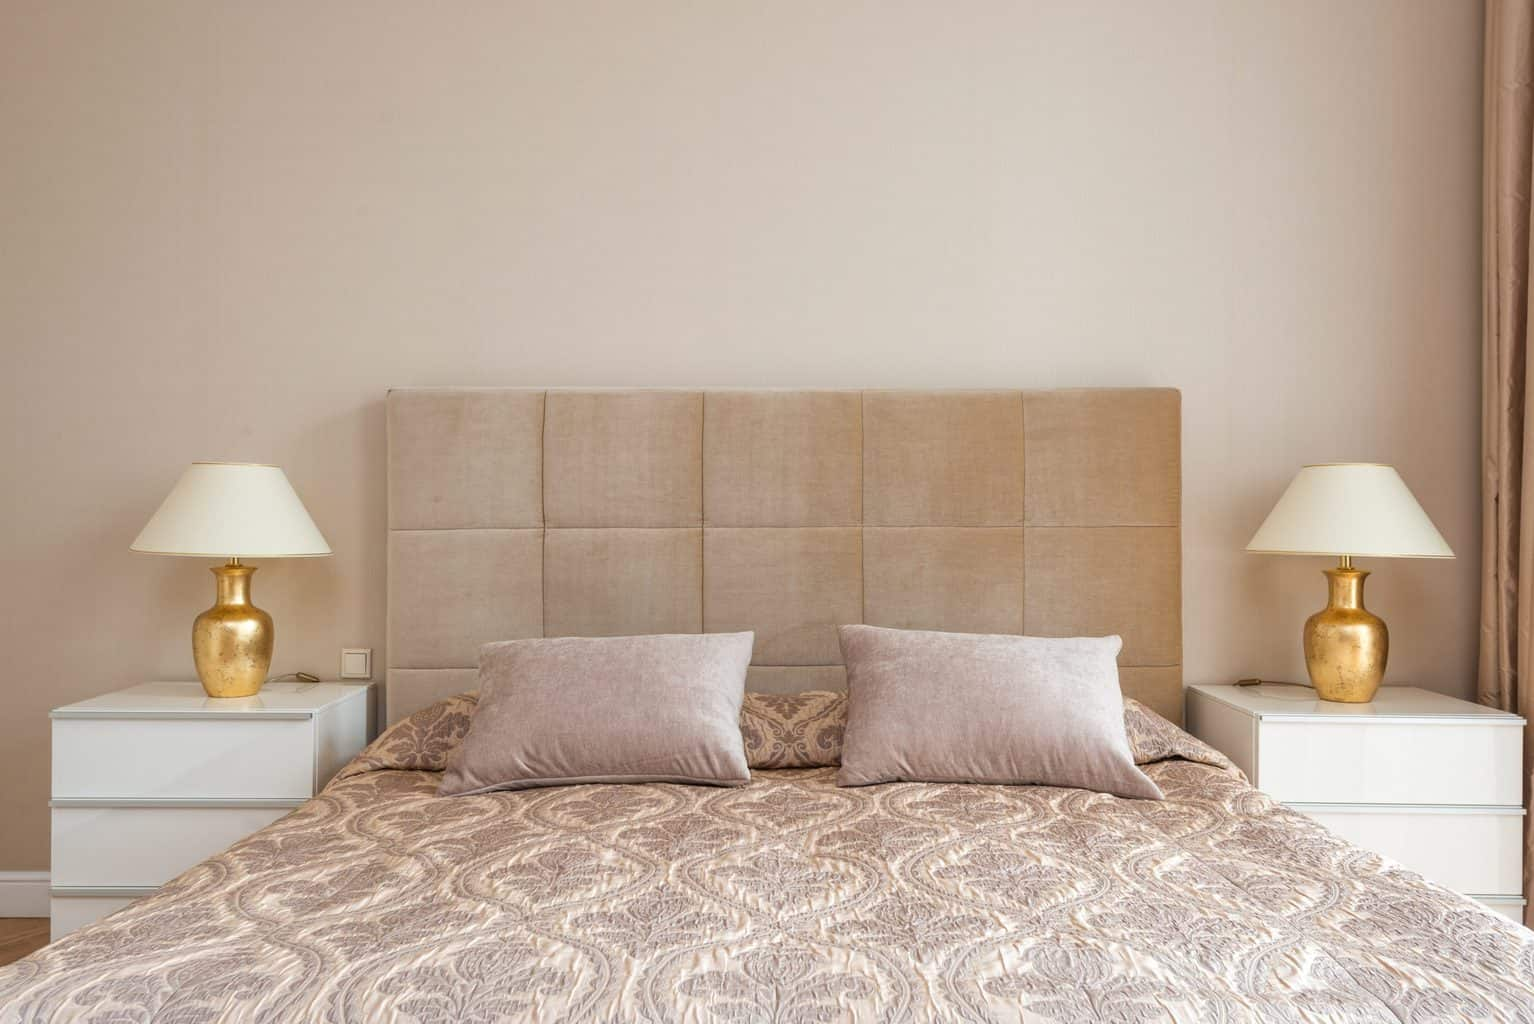 A brown toned bed with a headboard